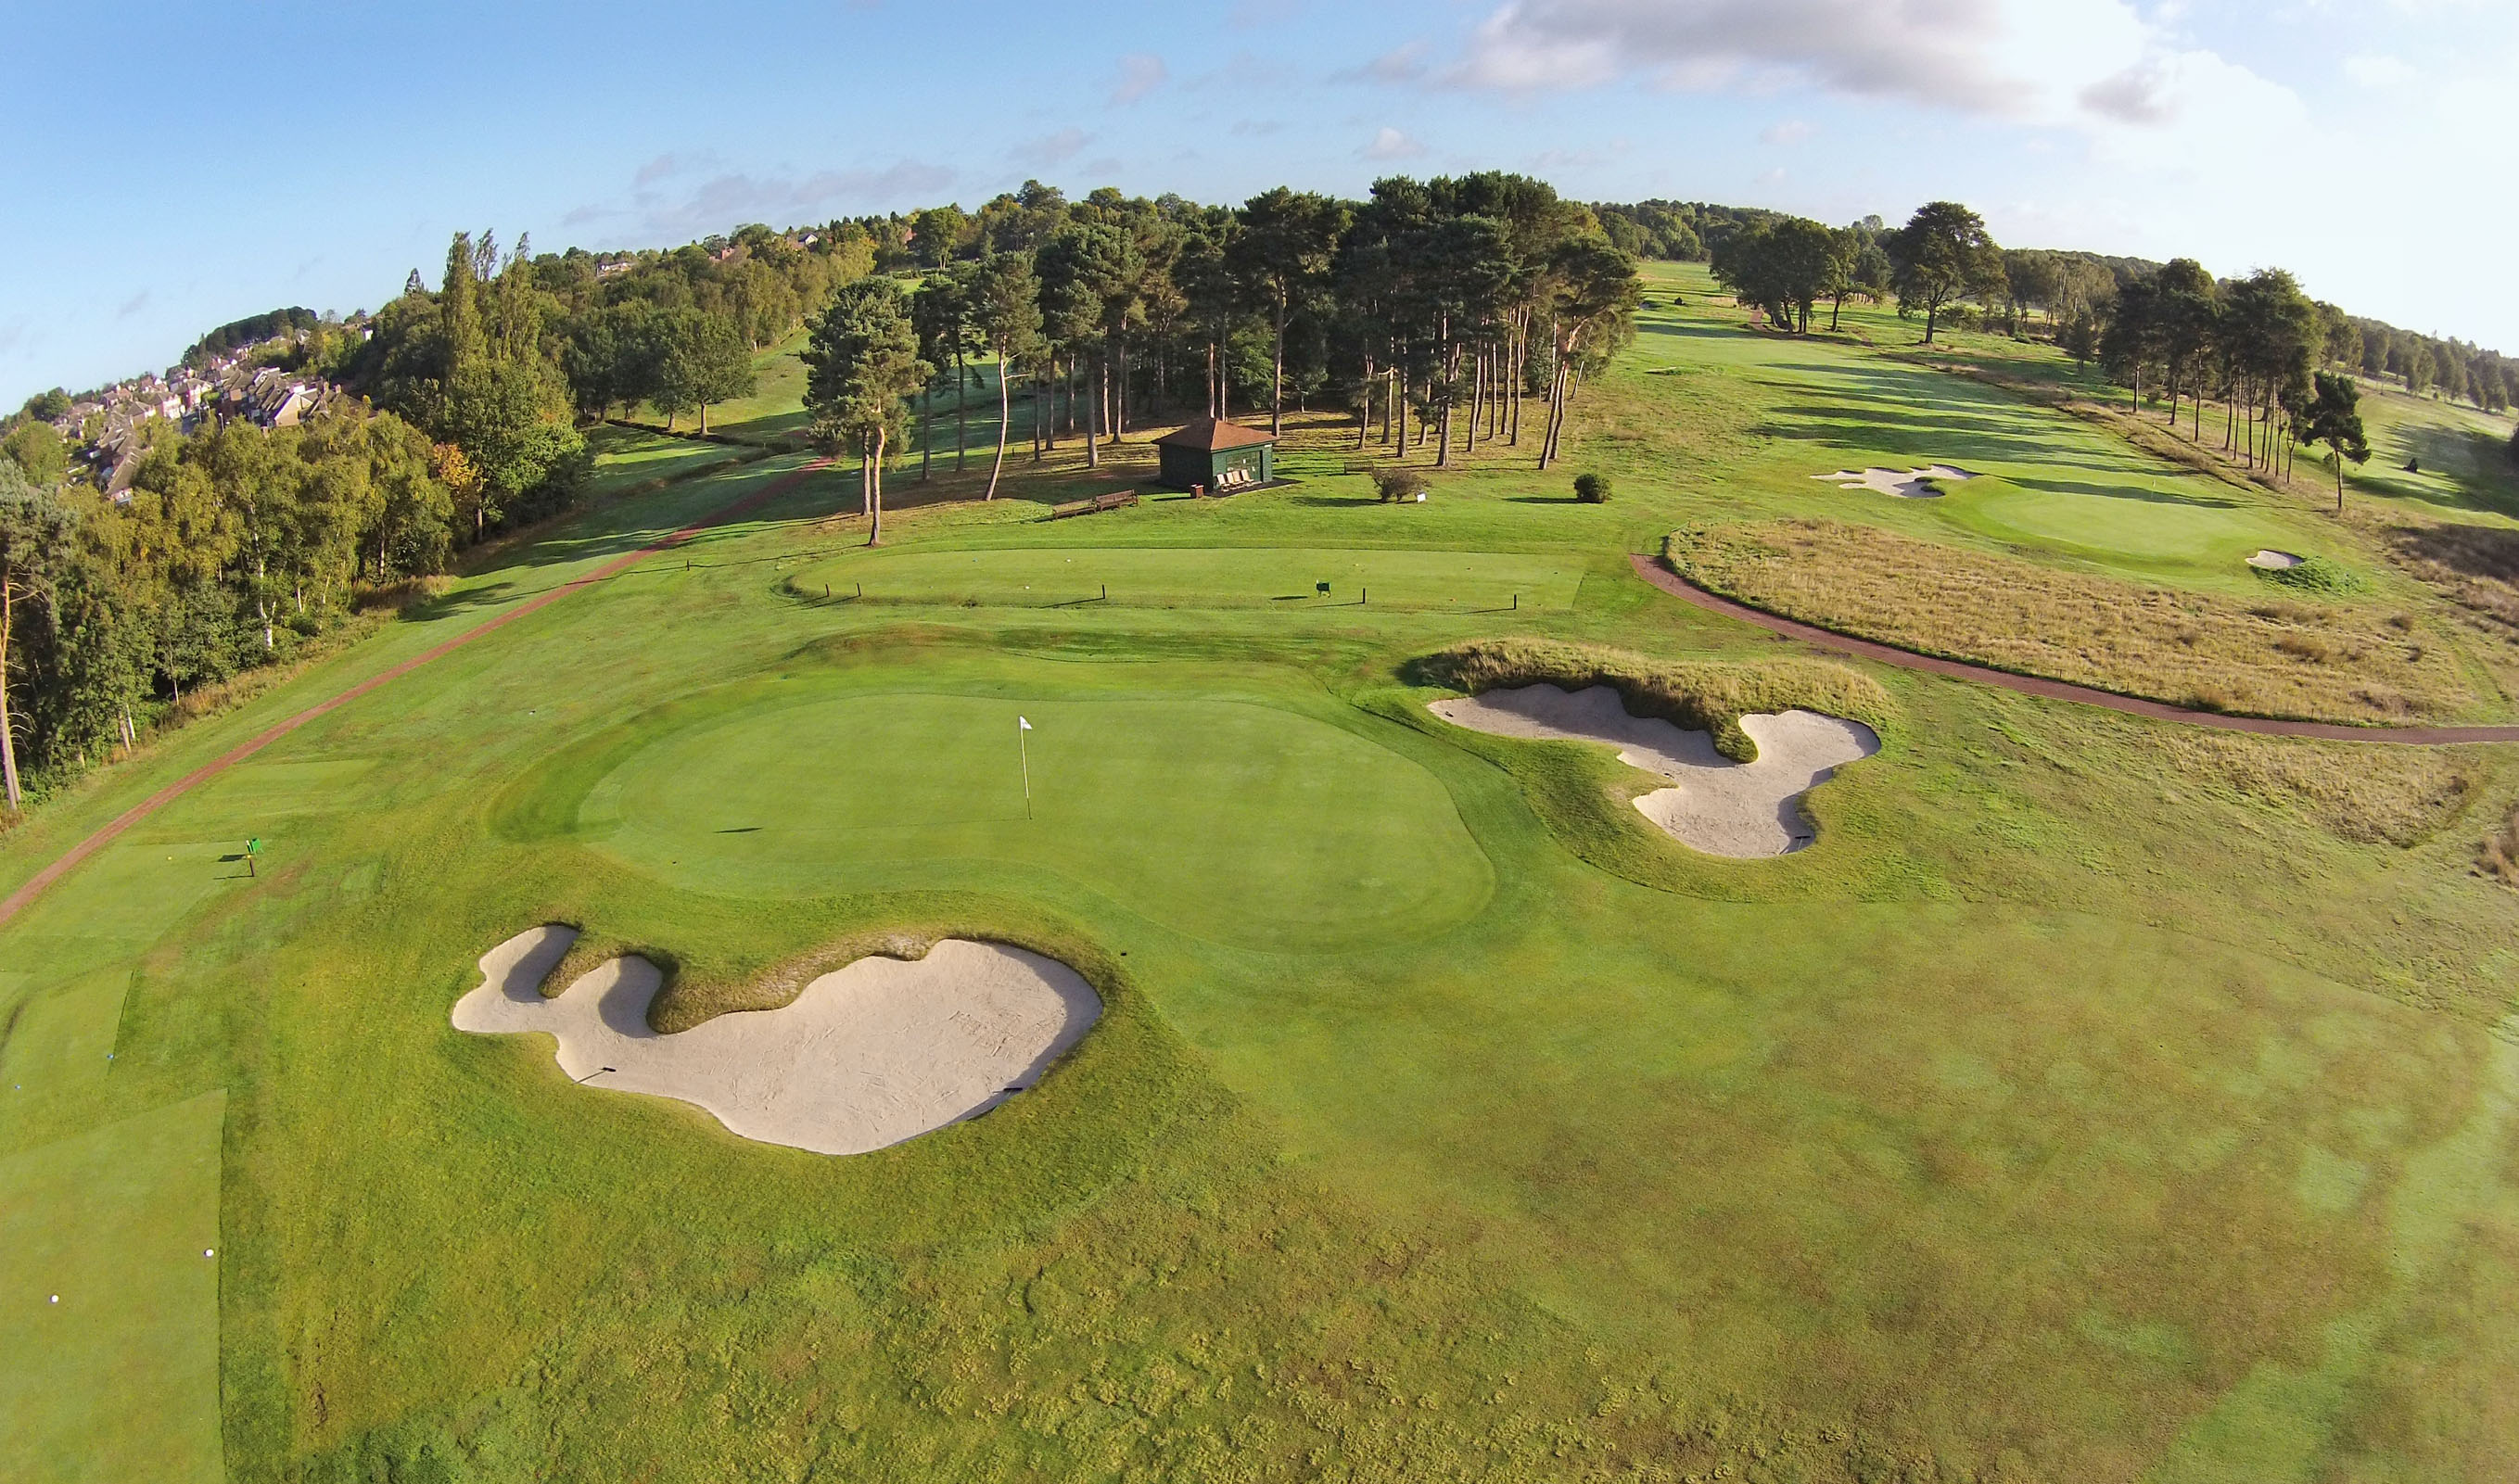 Blueskys Aerial Laser Maps Drive Creative Golf Course Design - High resolution aerial maps